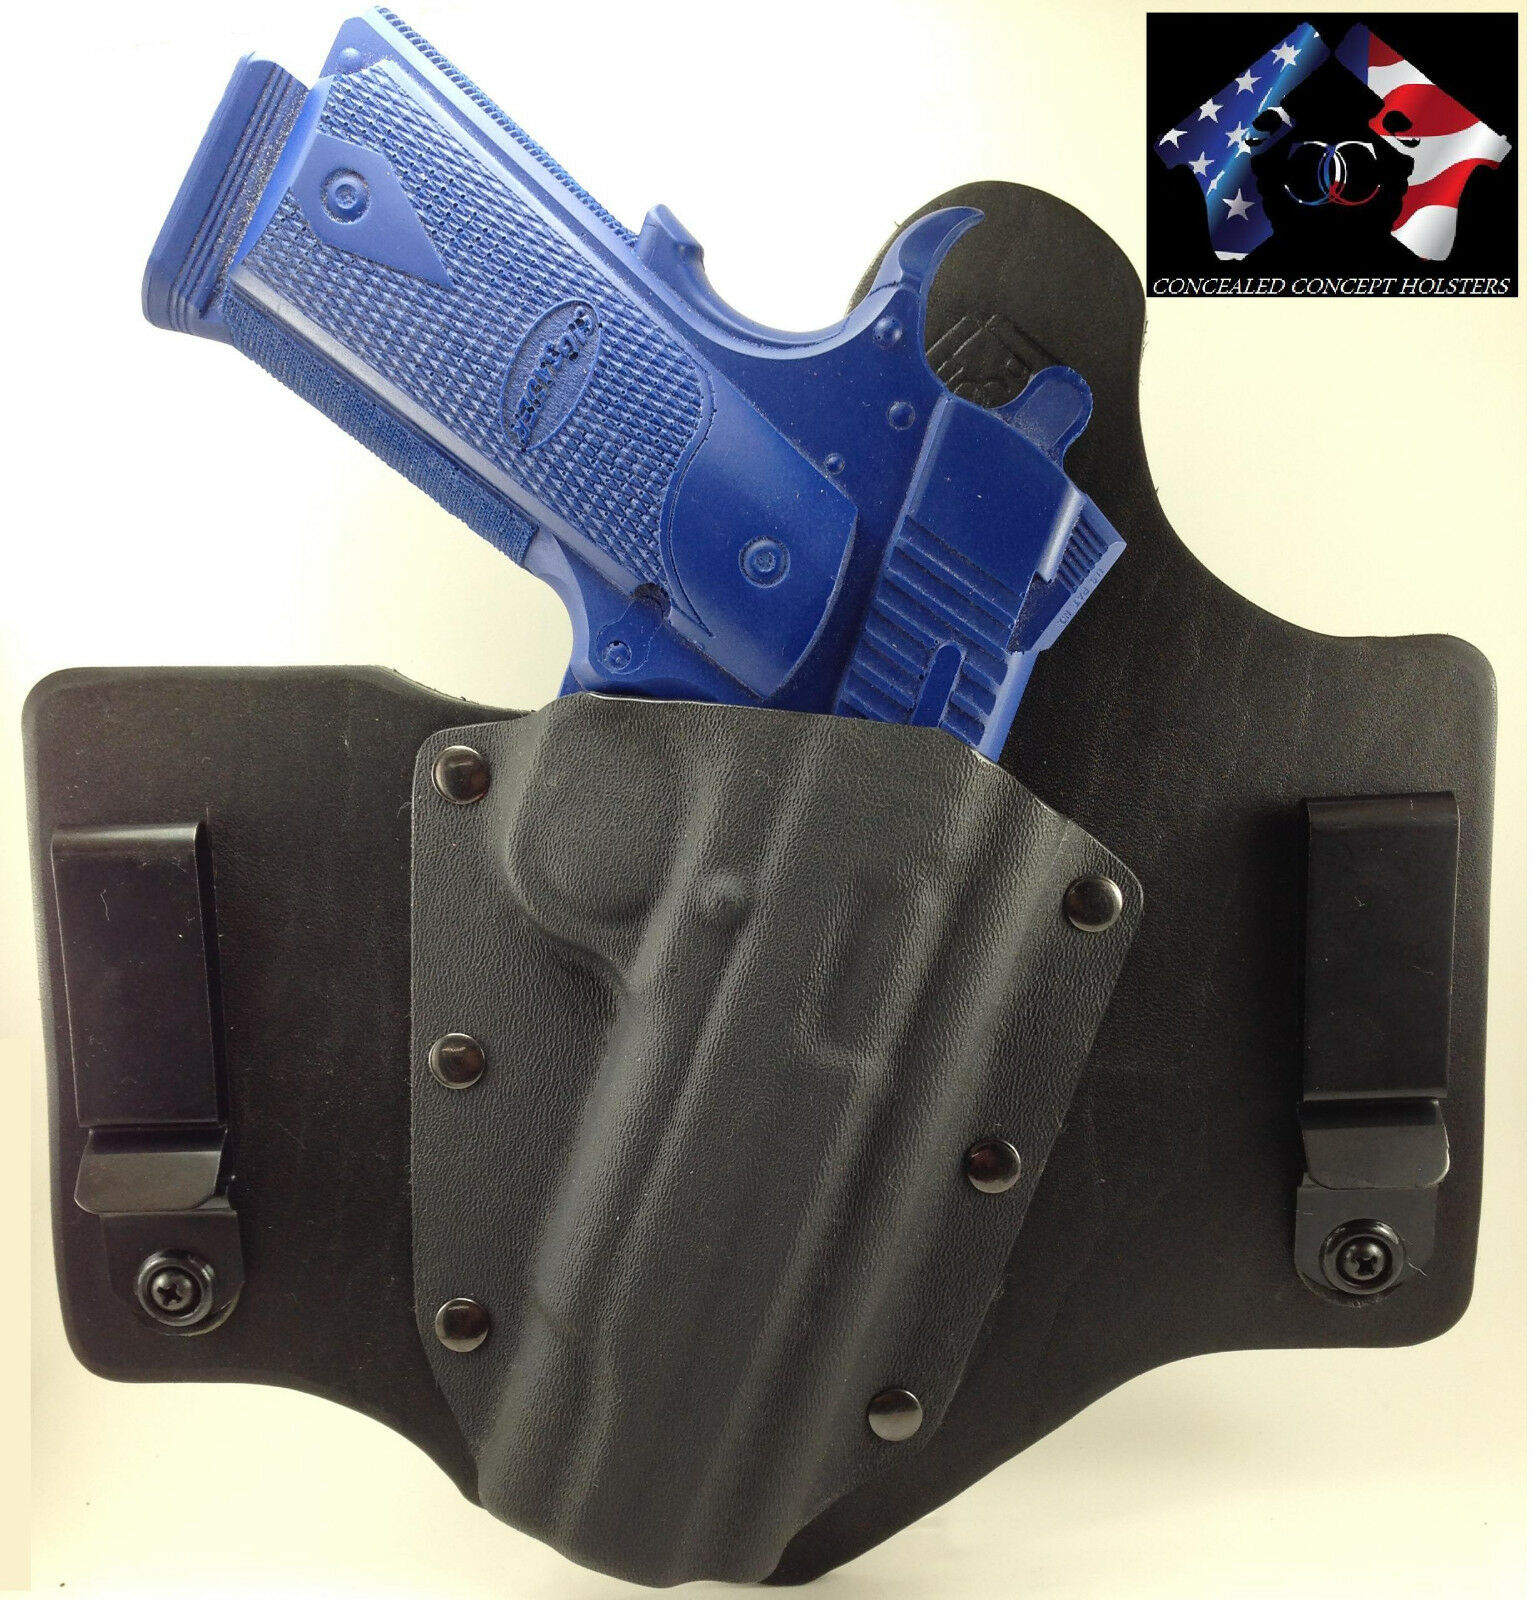 IWB KYDEX HOLSTER INSIDE WAISTBAND LEATHER KYDEX HYBRID CONCEALED CONCEPT